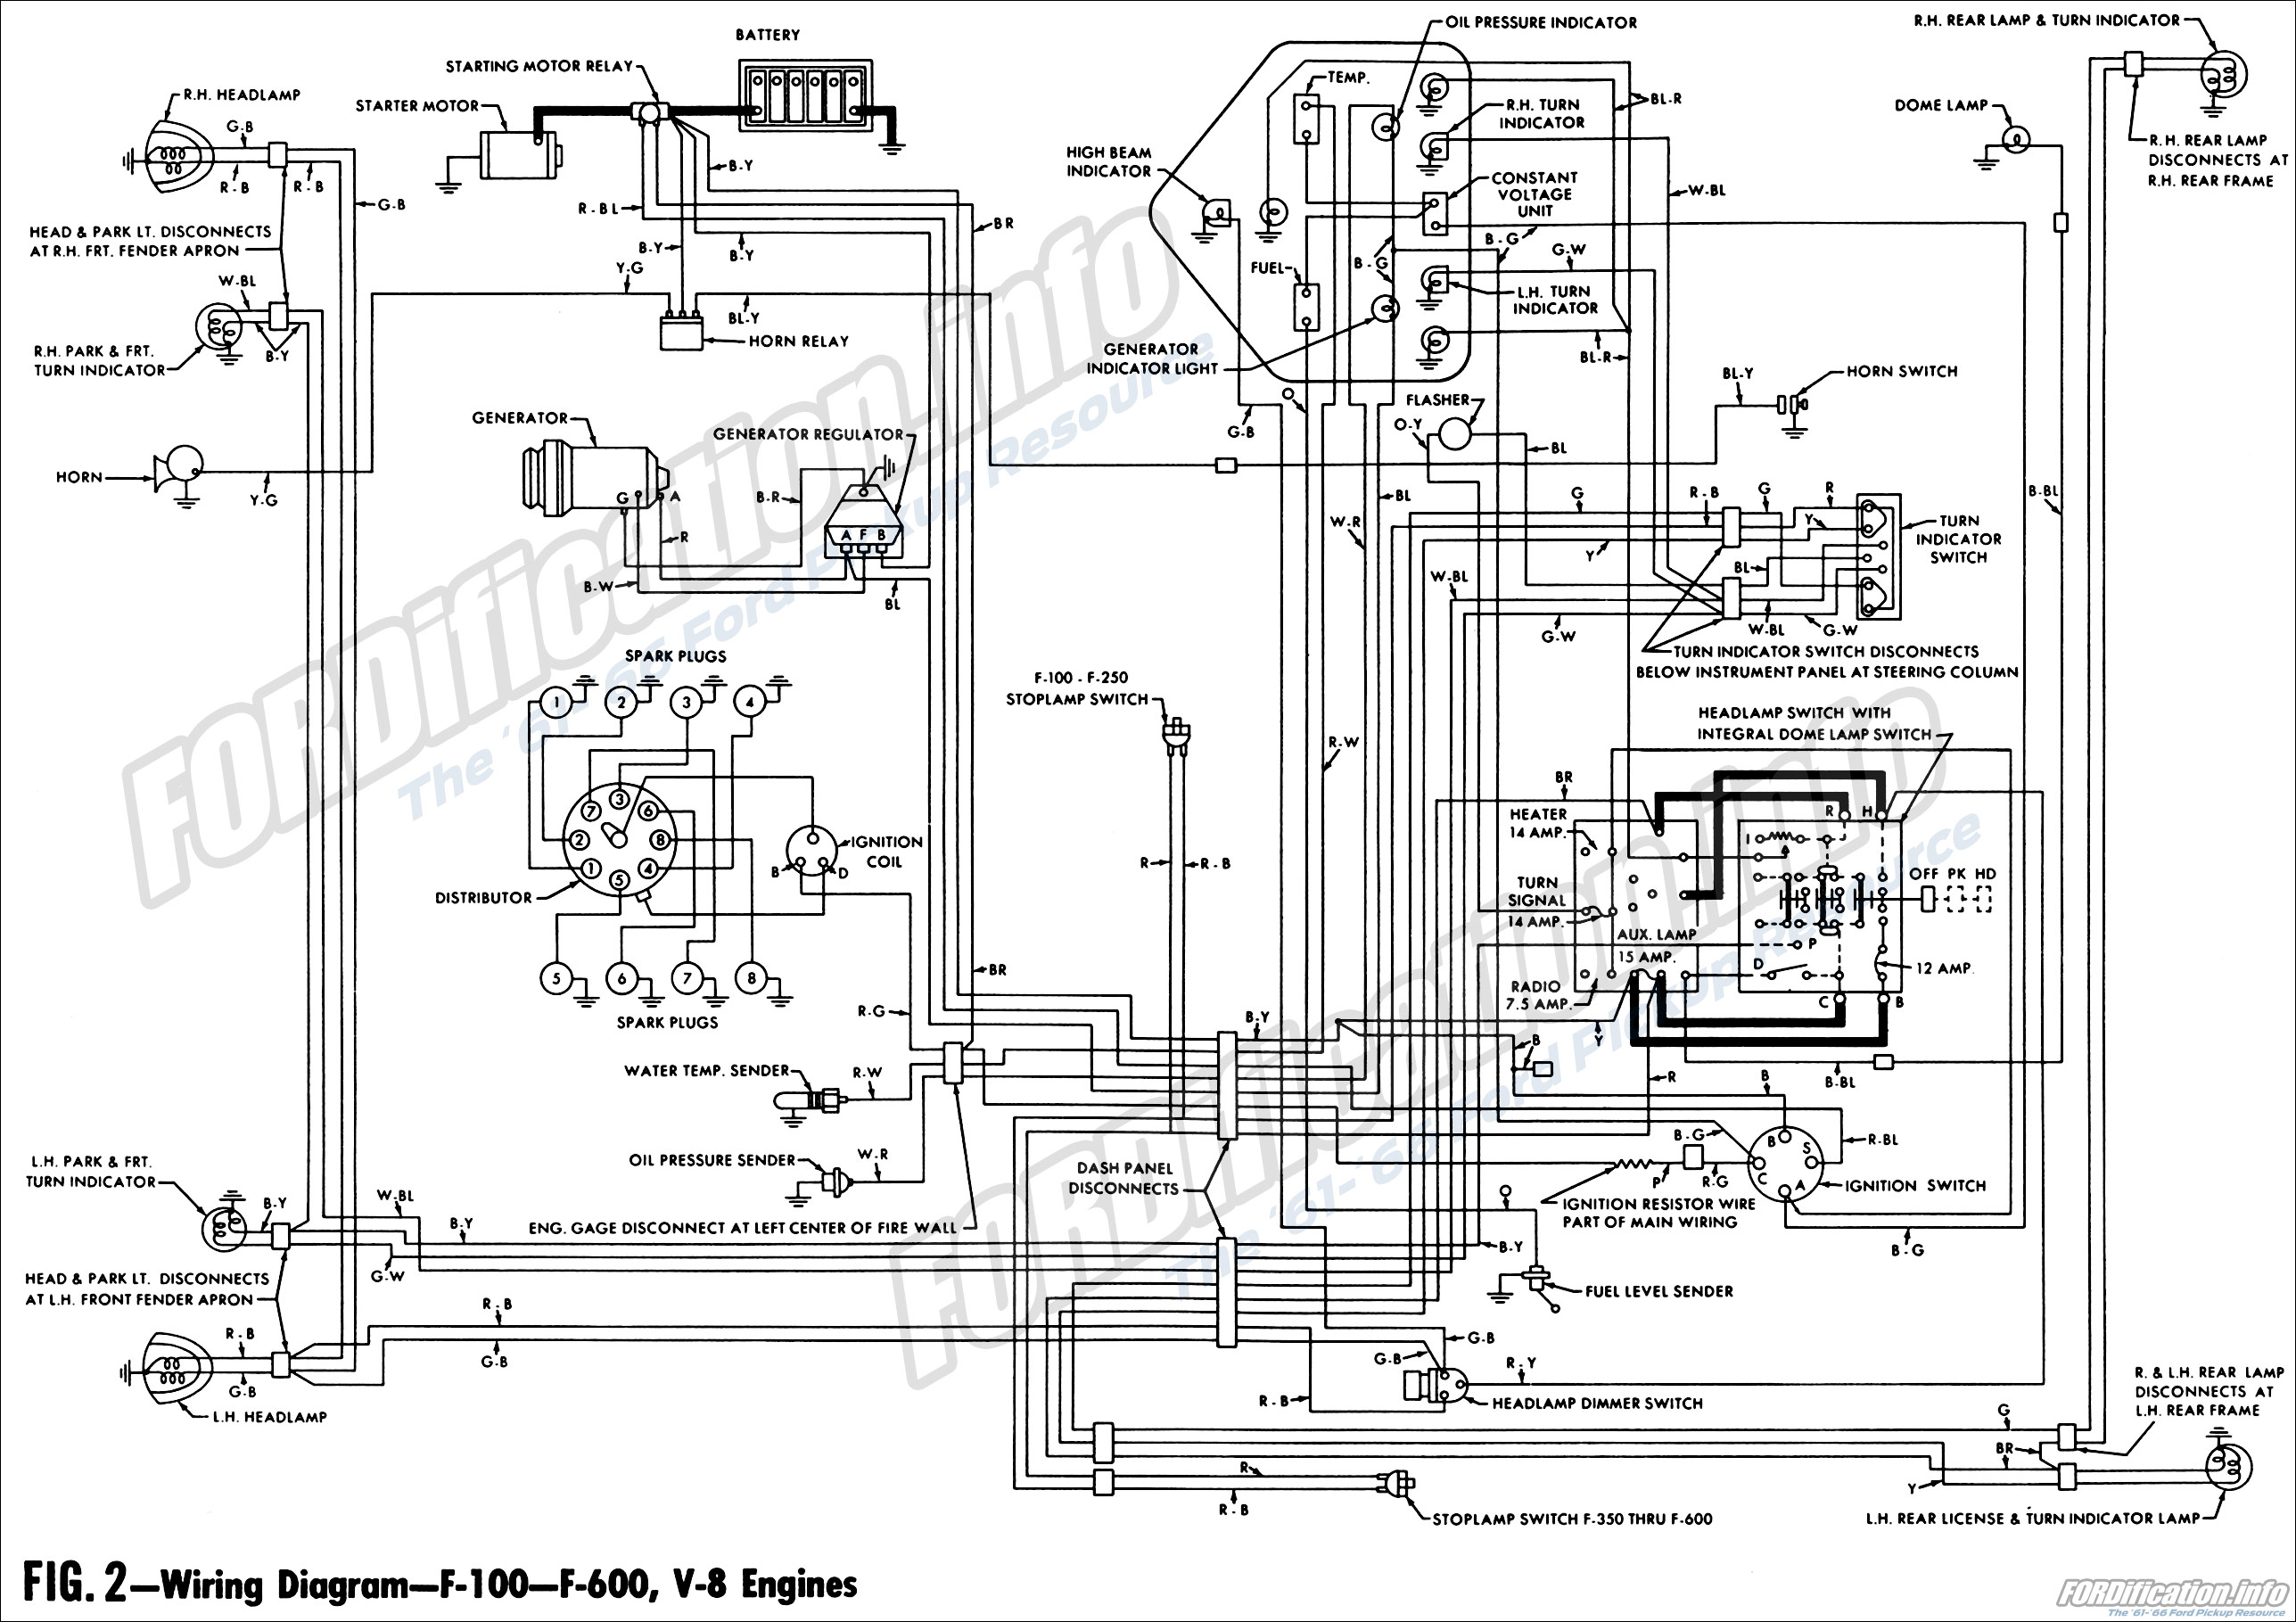 61_02 1961 ford truck wiring diagrams fordification info the '61 '66 1961 ford truck wiring diagram at gsmportal.co